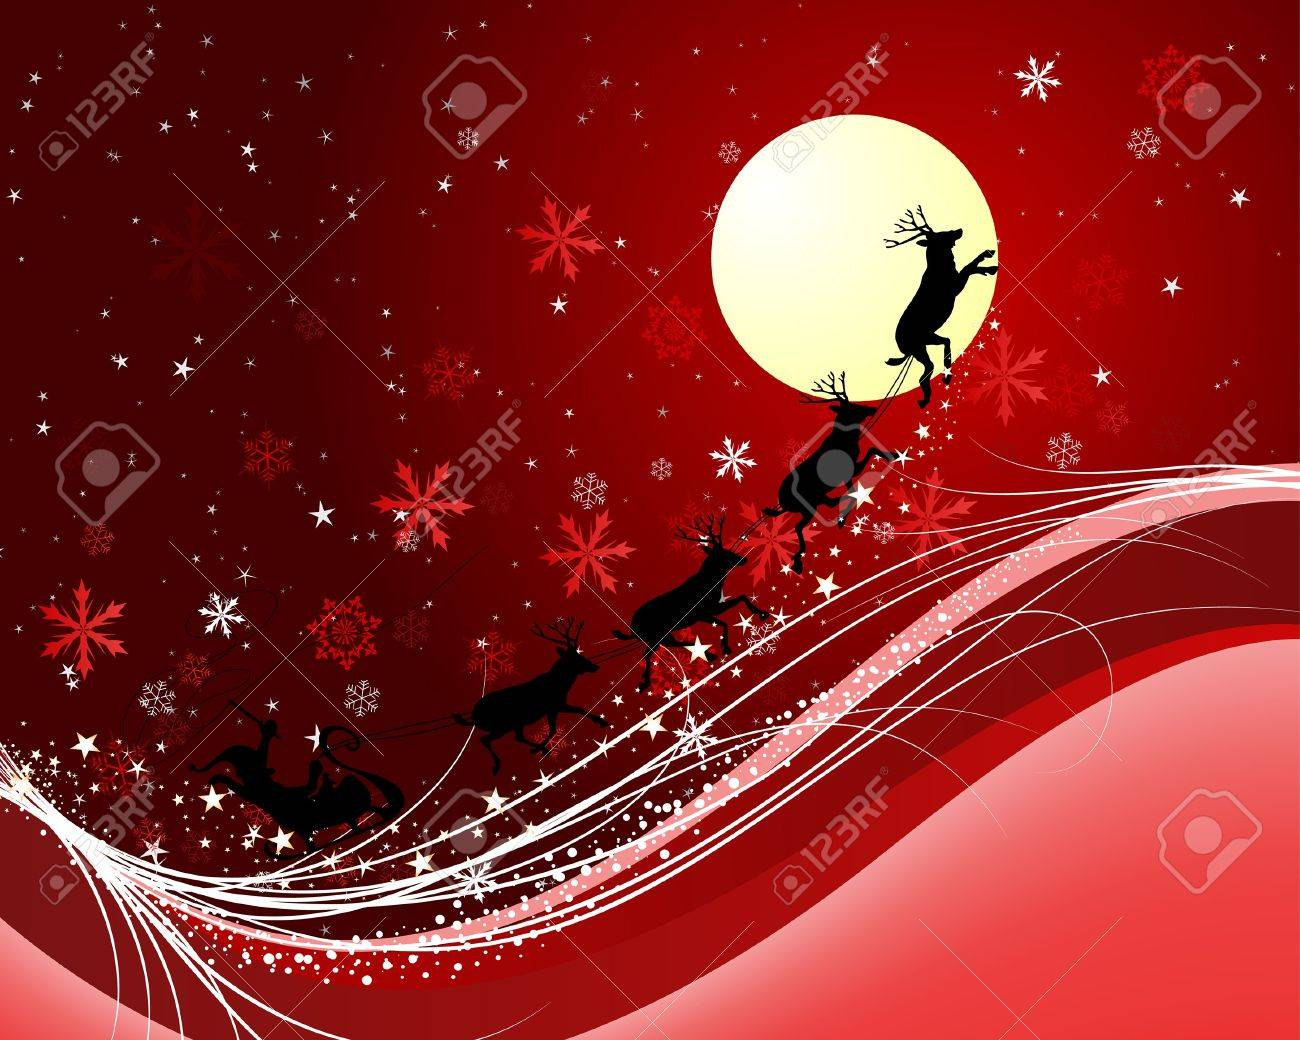 Beautiful vector christmas new year background for design use - Beautiful Christmas New Year Background For Design Use Stock Vector 7524379